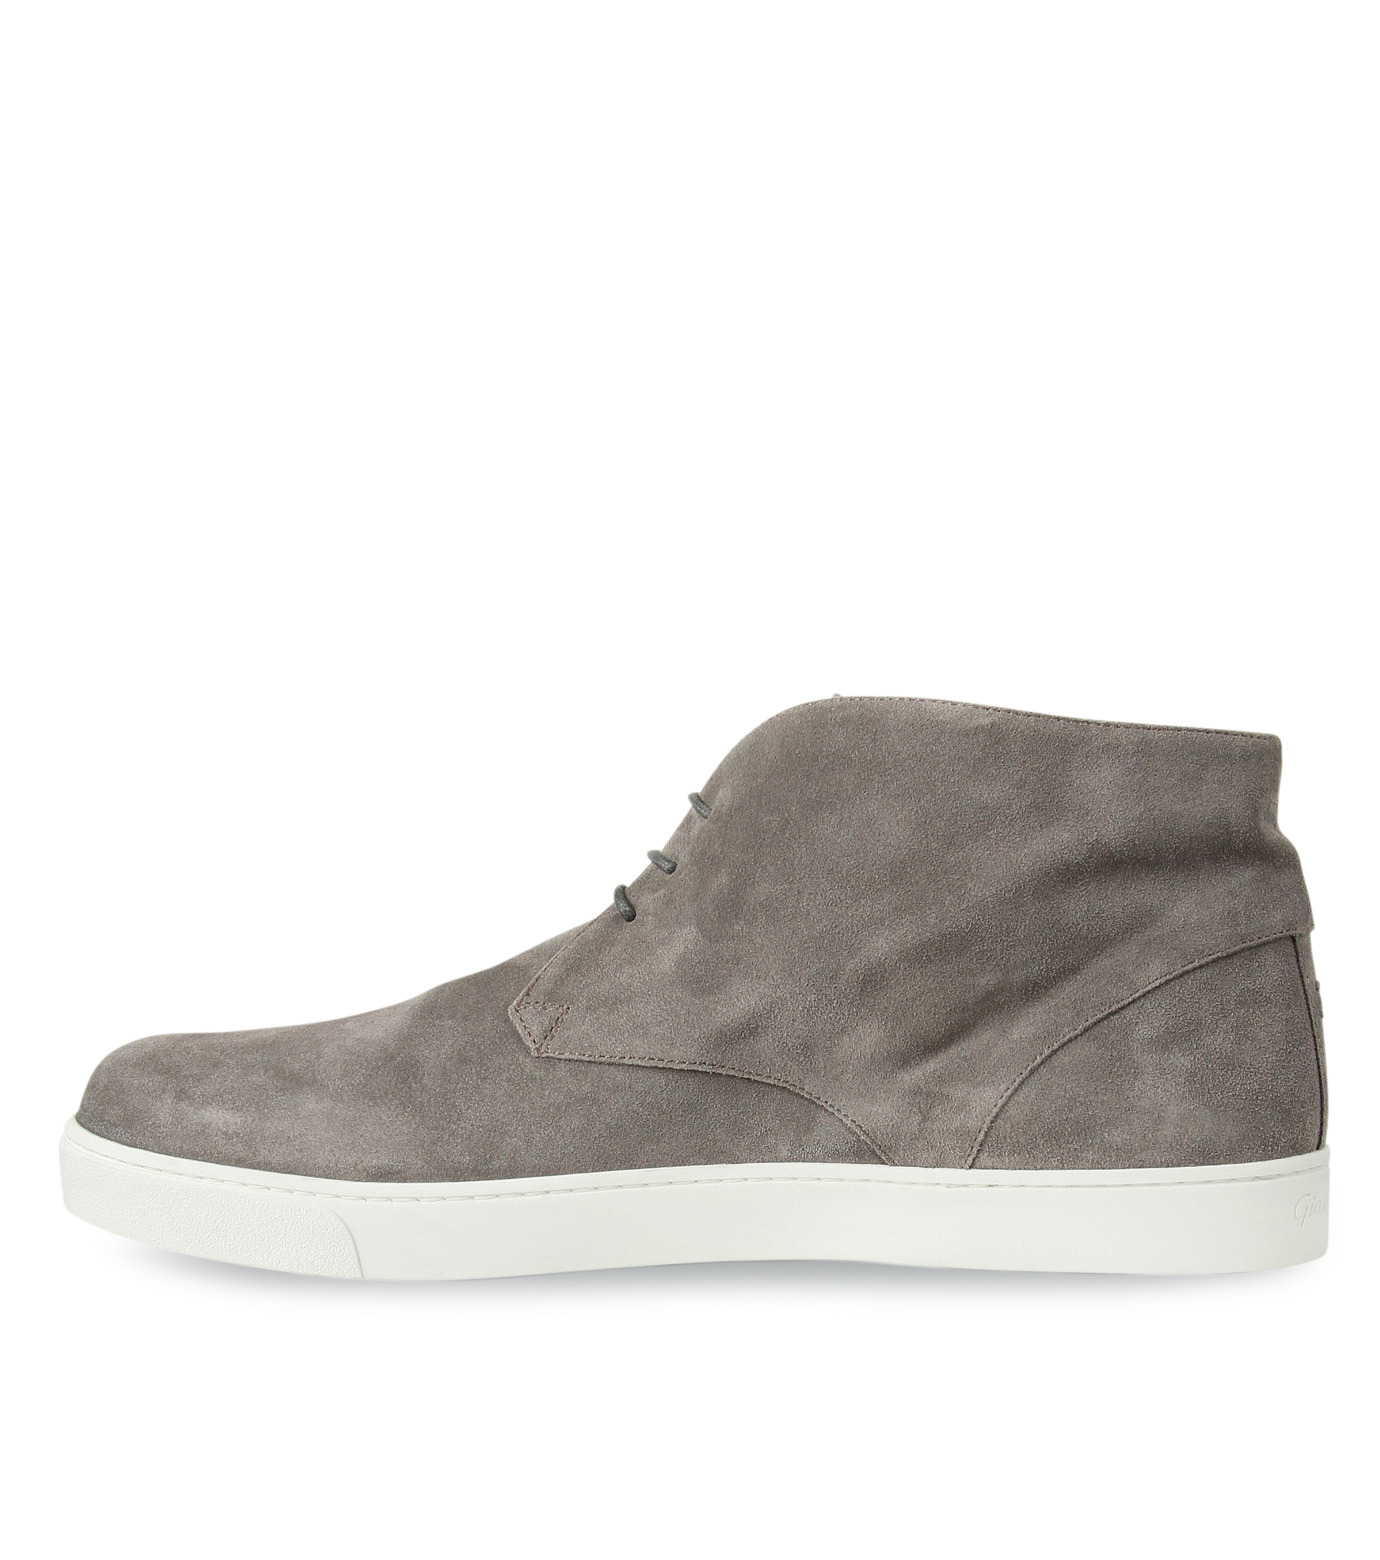 Gianvito Rossi(ジャンヴィト ロッシ)のSuede Lace Up Shoes-GRAY(シューズ/shoes)-GR29420-11 拡大詳細画像2